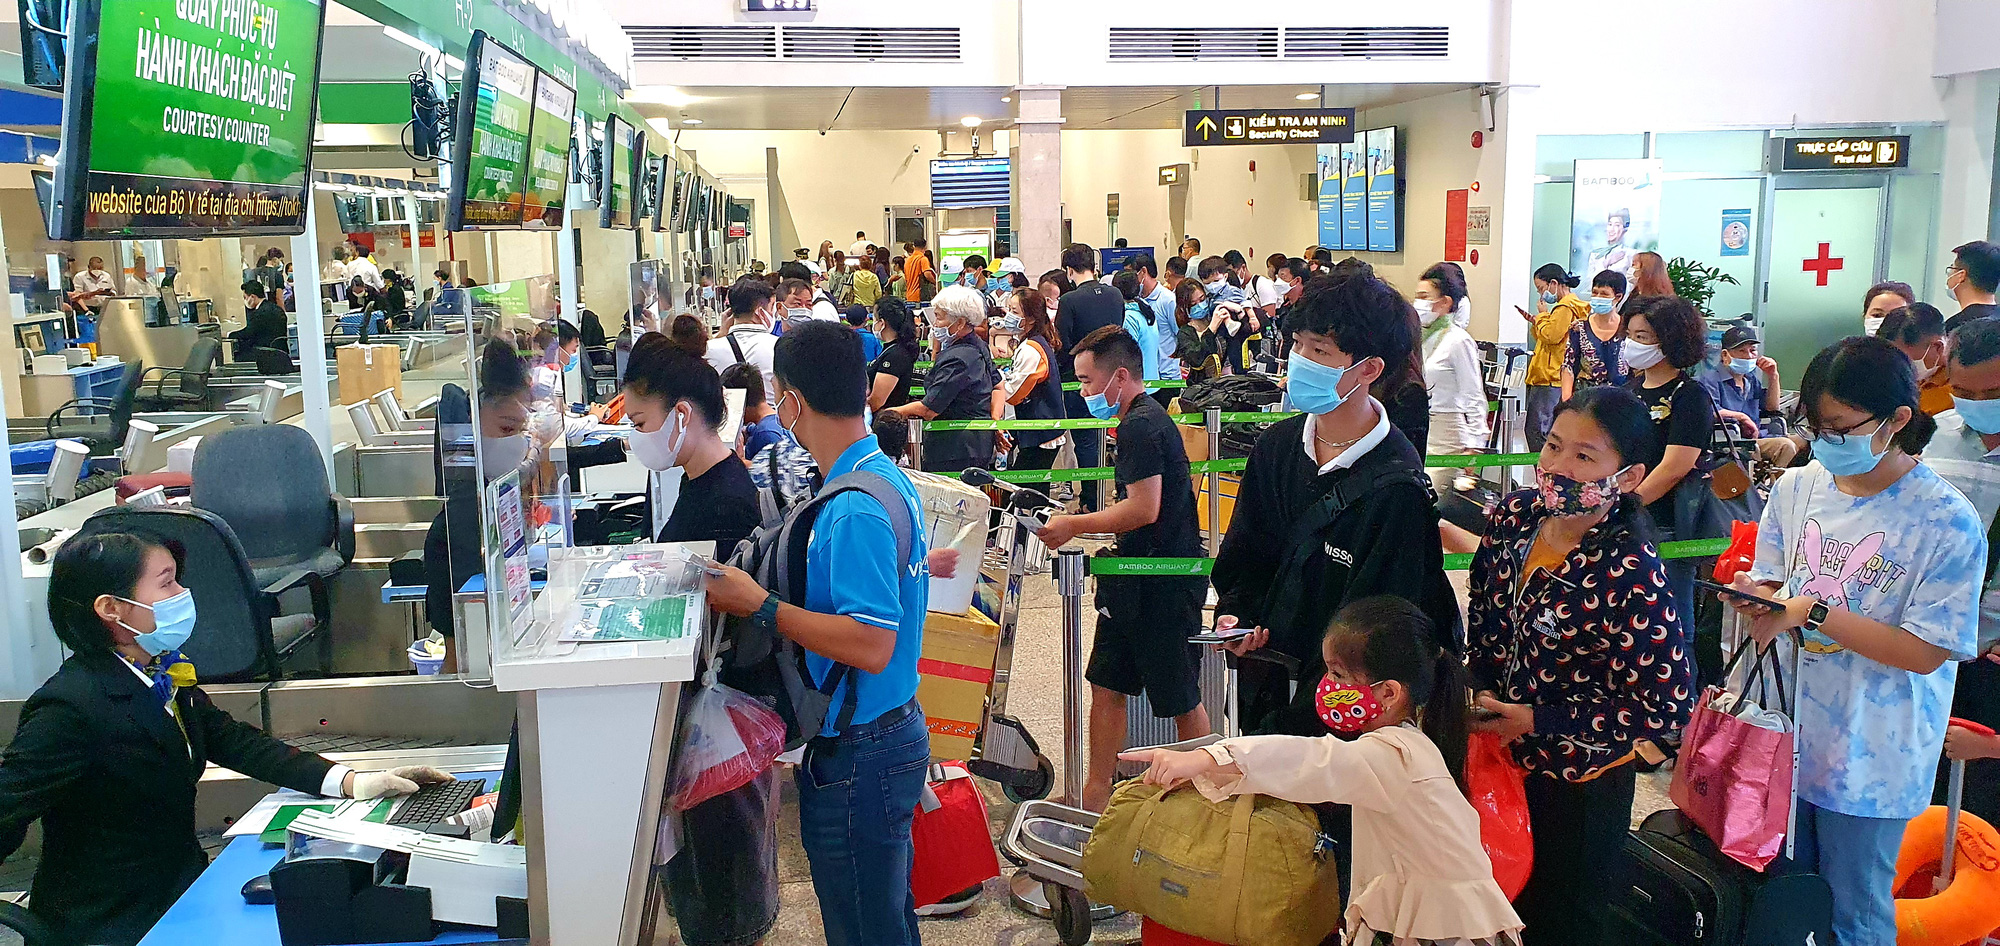 Airlines must refund service charges for canceled tickets: Vietnam aviation authority